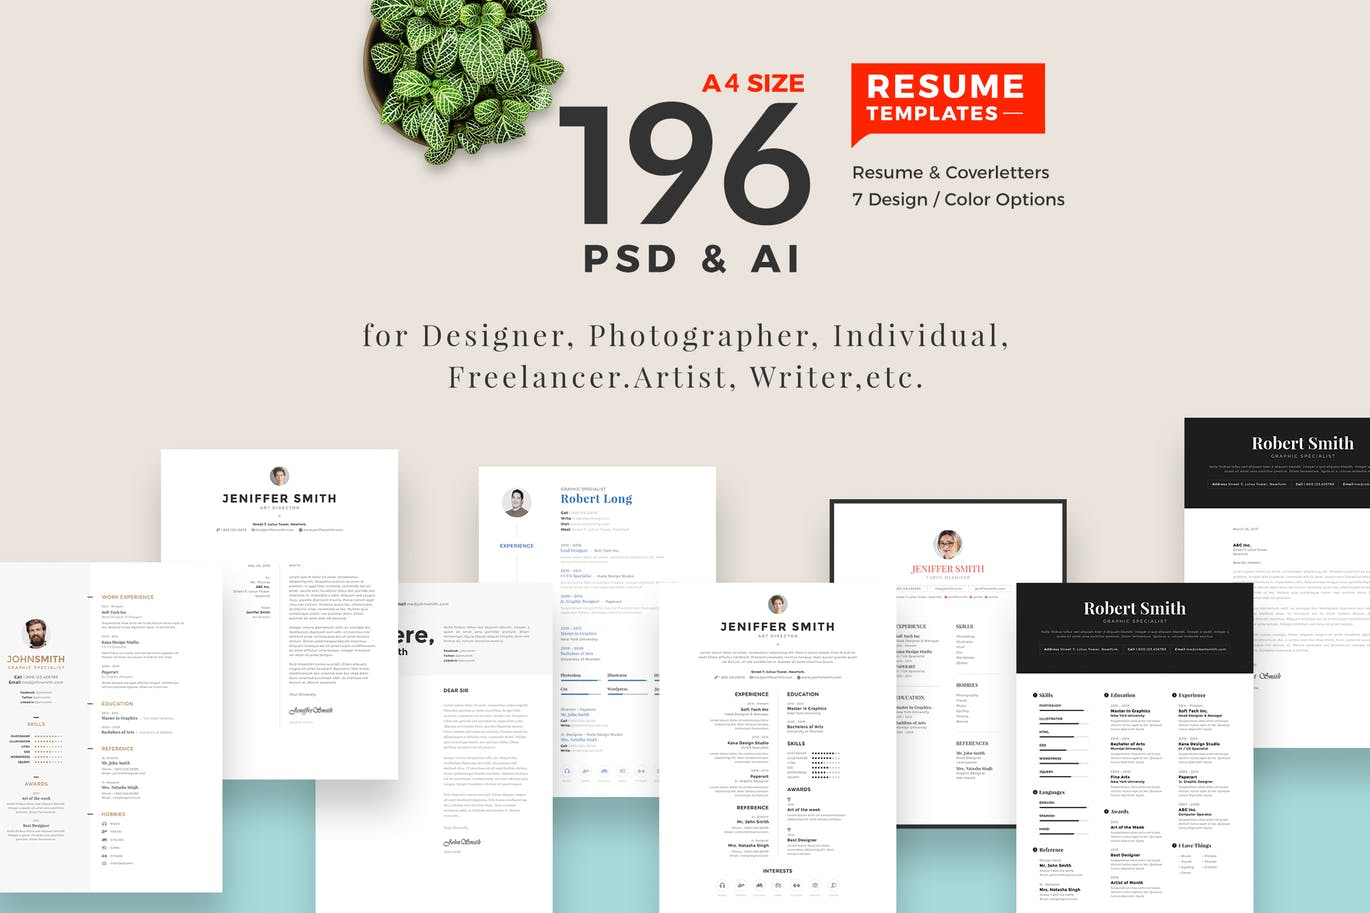 The Best CV & Resume Templates: 50 Examples 1